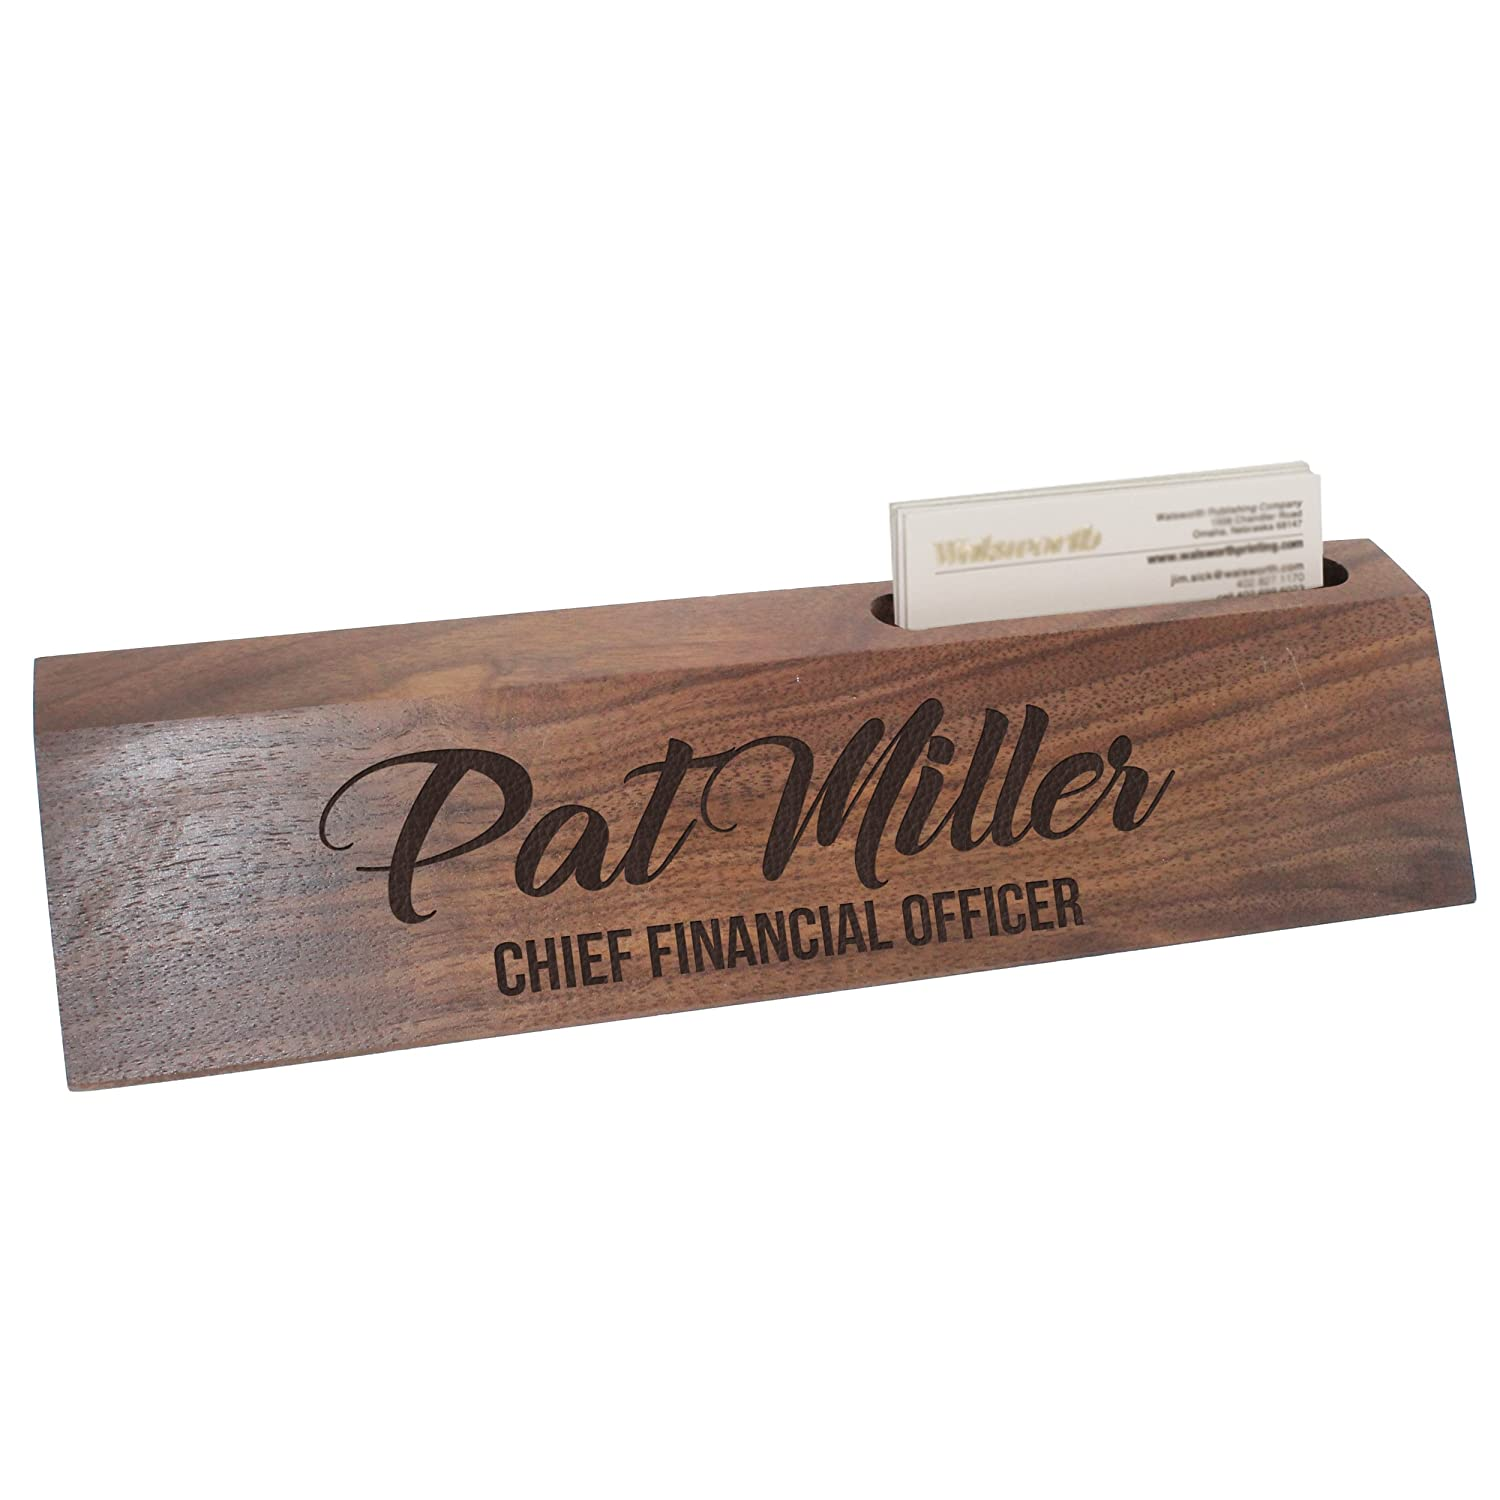 b1e61d85c5ed8 Custom Engraved Desk Name Plate - Personalized Desk Wedge with Business  Card Holder (Walnut Wood)